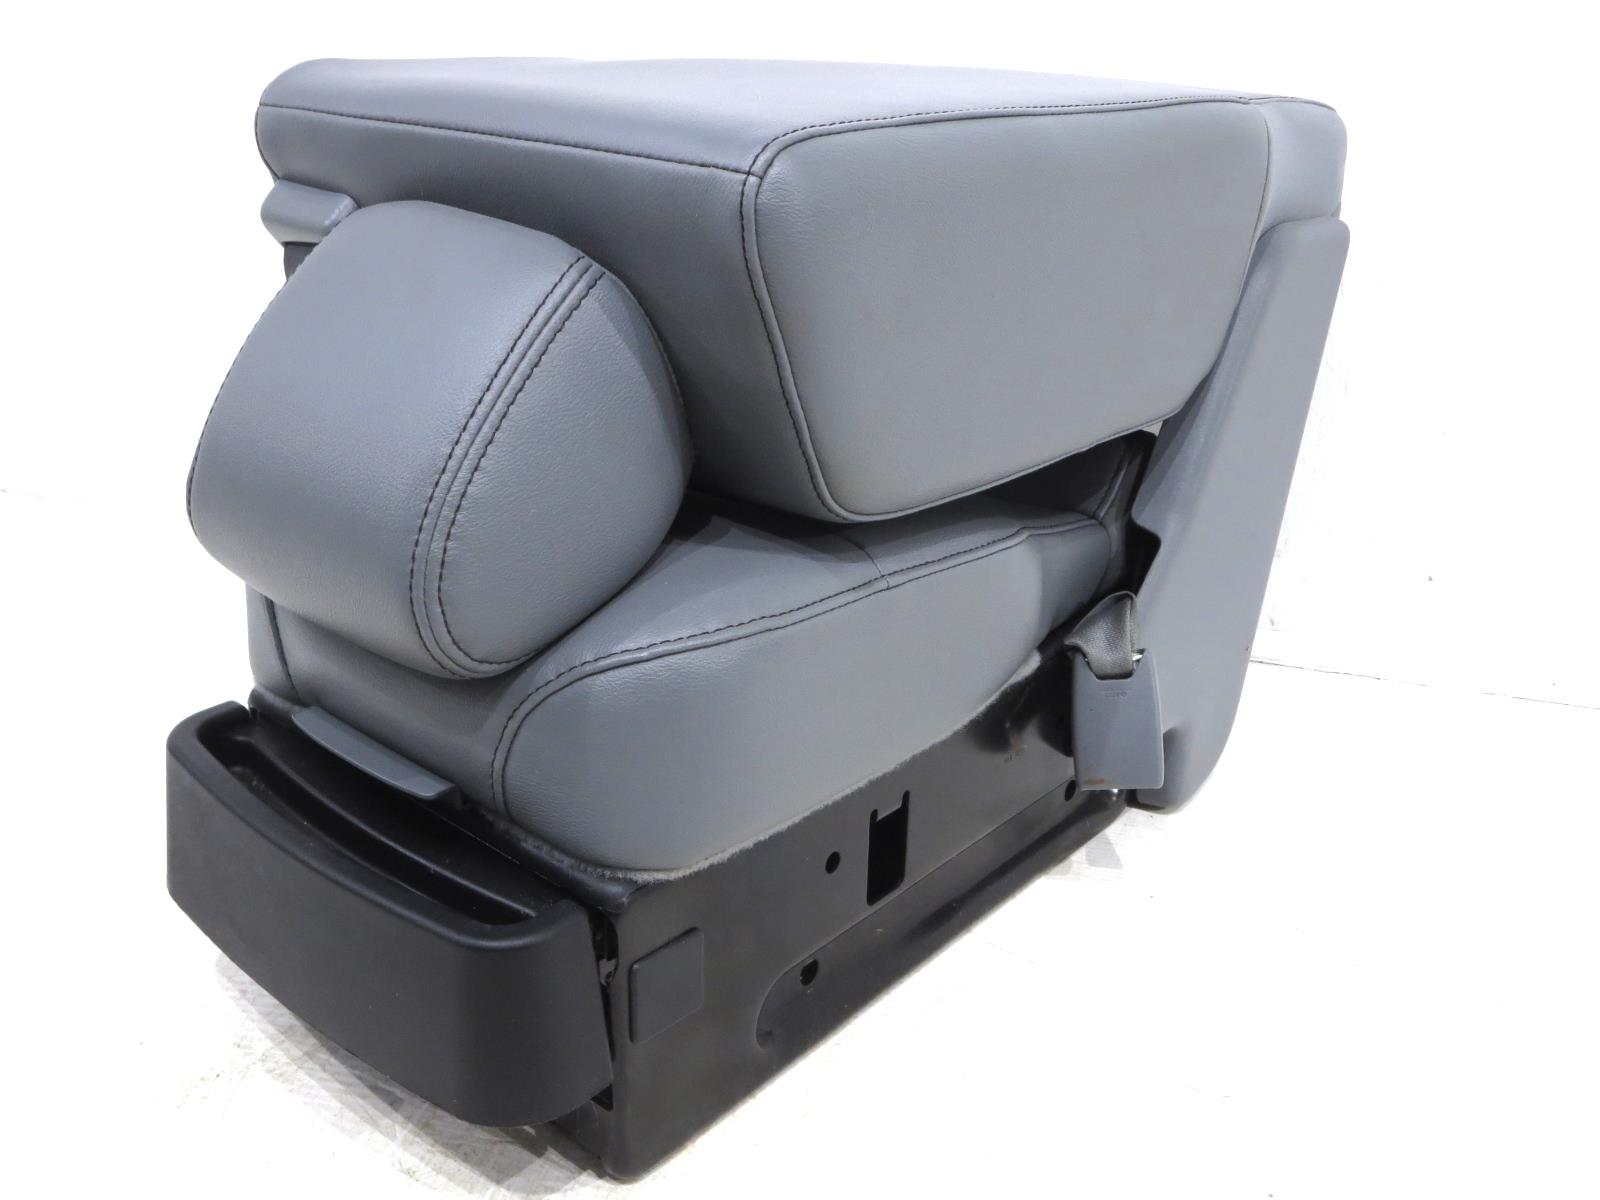 Ford F150 F 150 Vinyl Center Console Jump Seat Jumpseat 2009 2010 2011 2012 2013 2014